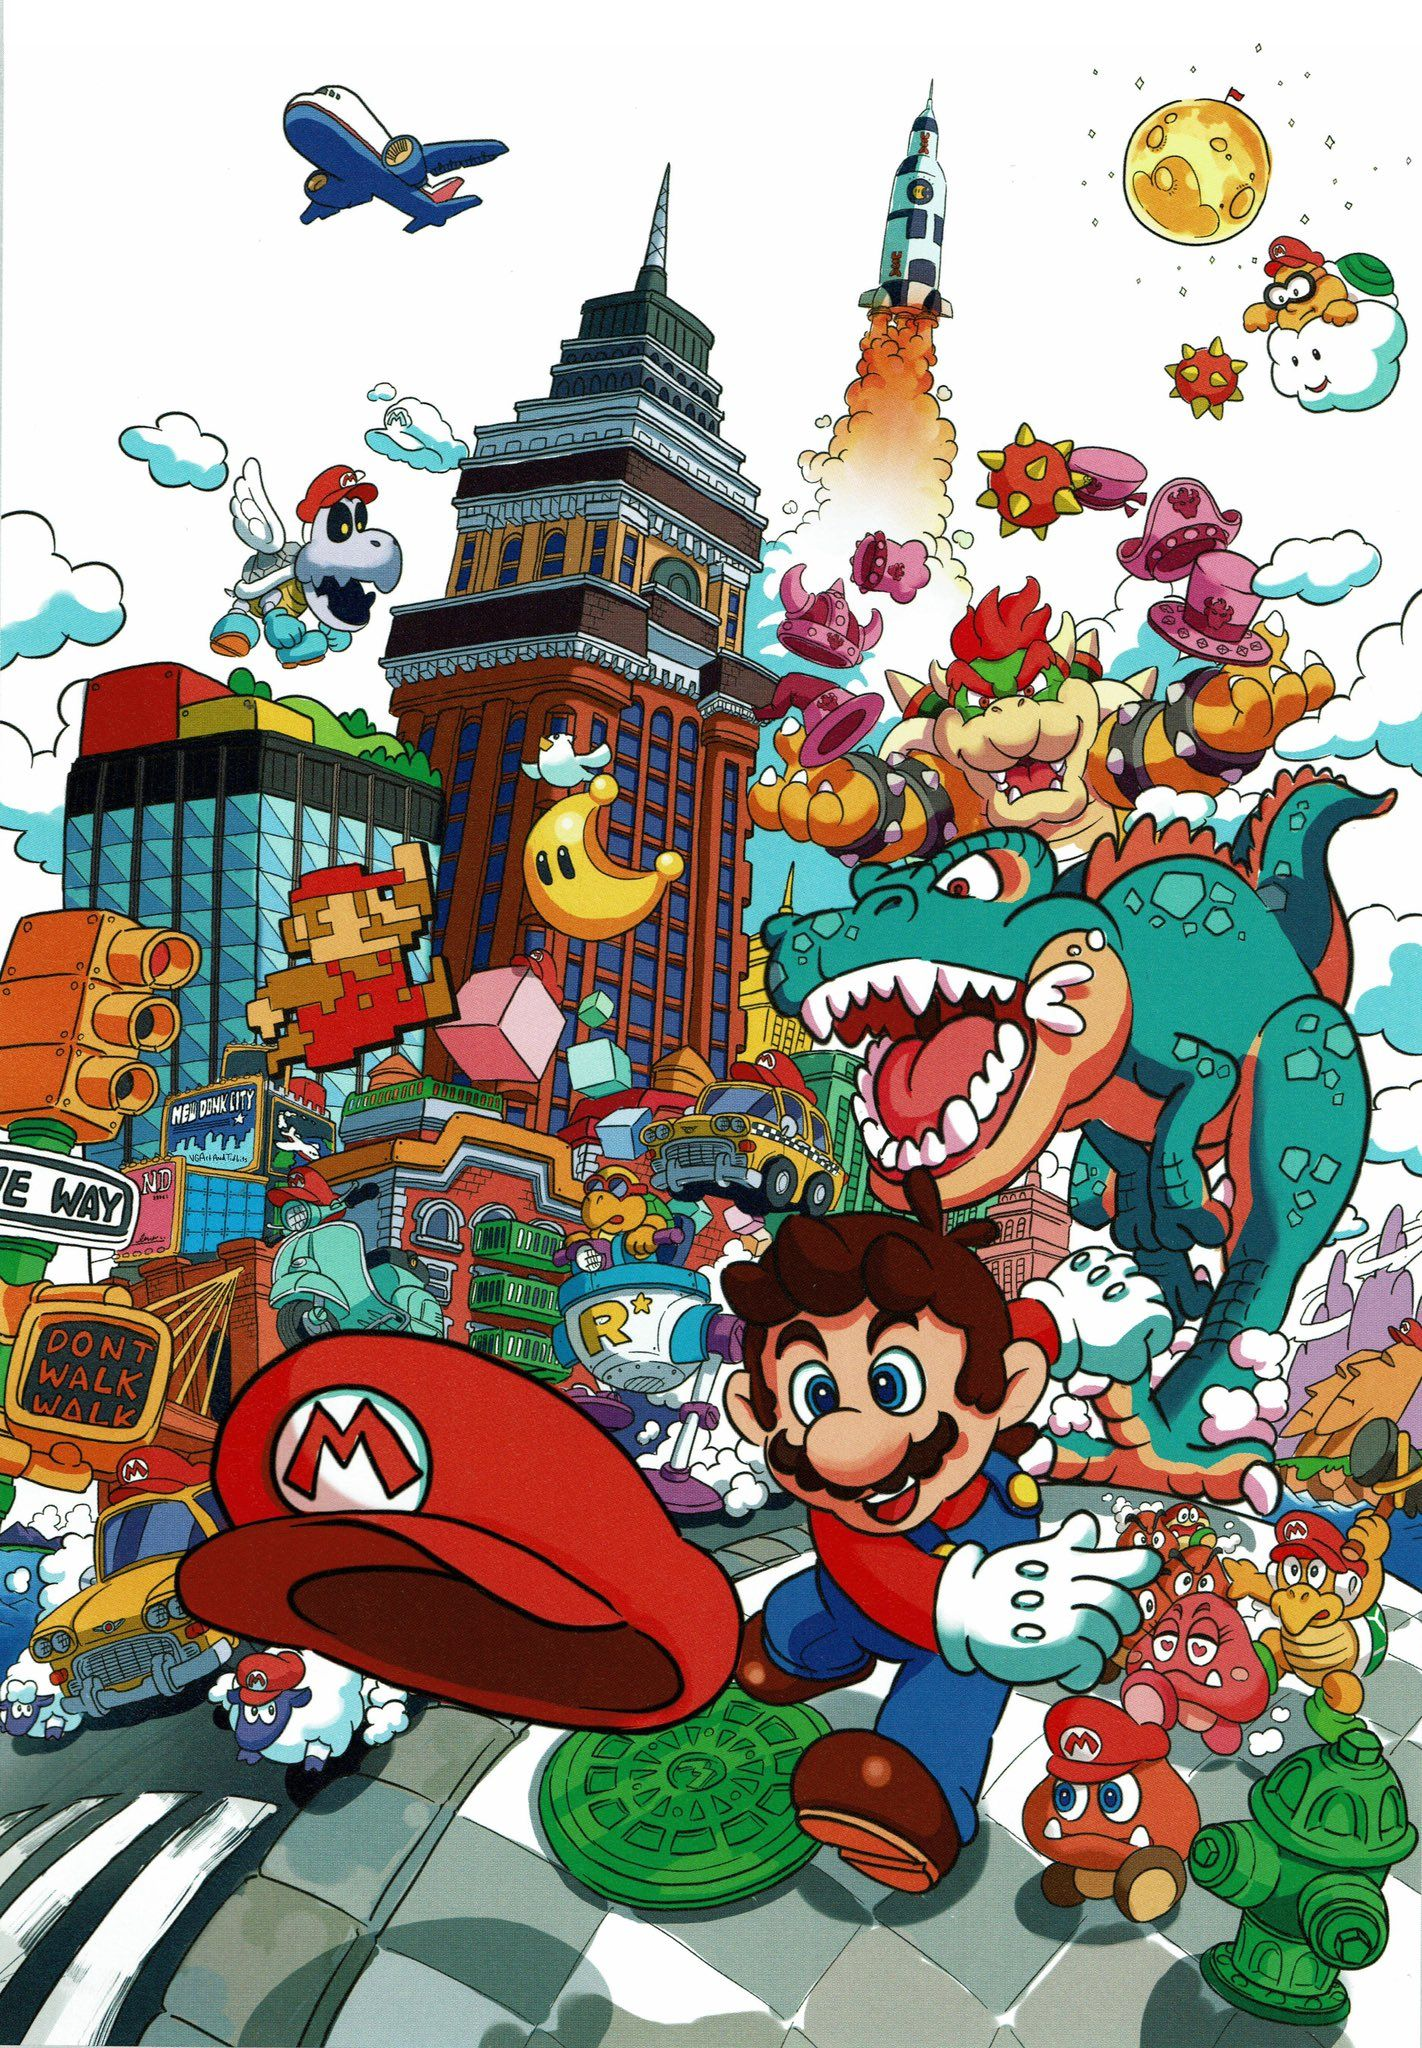 VideoGameArt&Tidbits on Super mario art, Mario, luigi